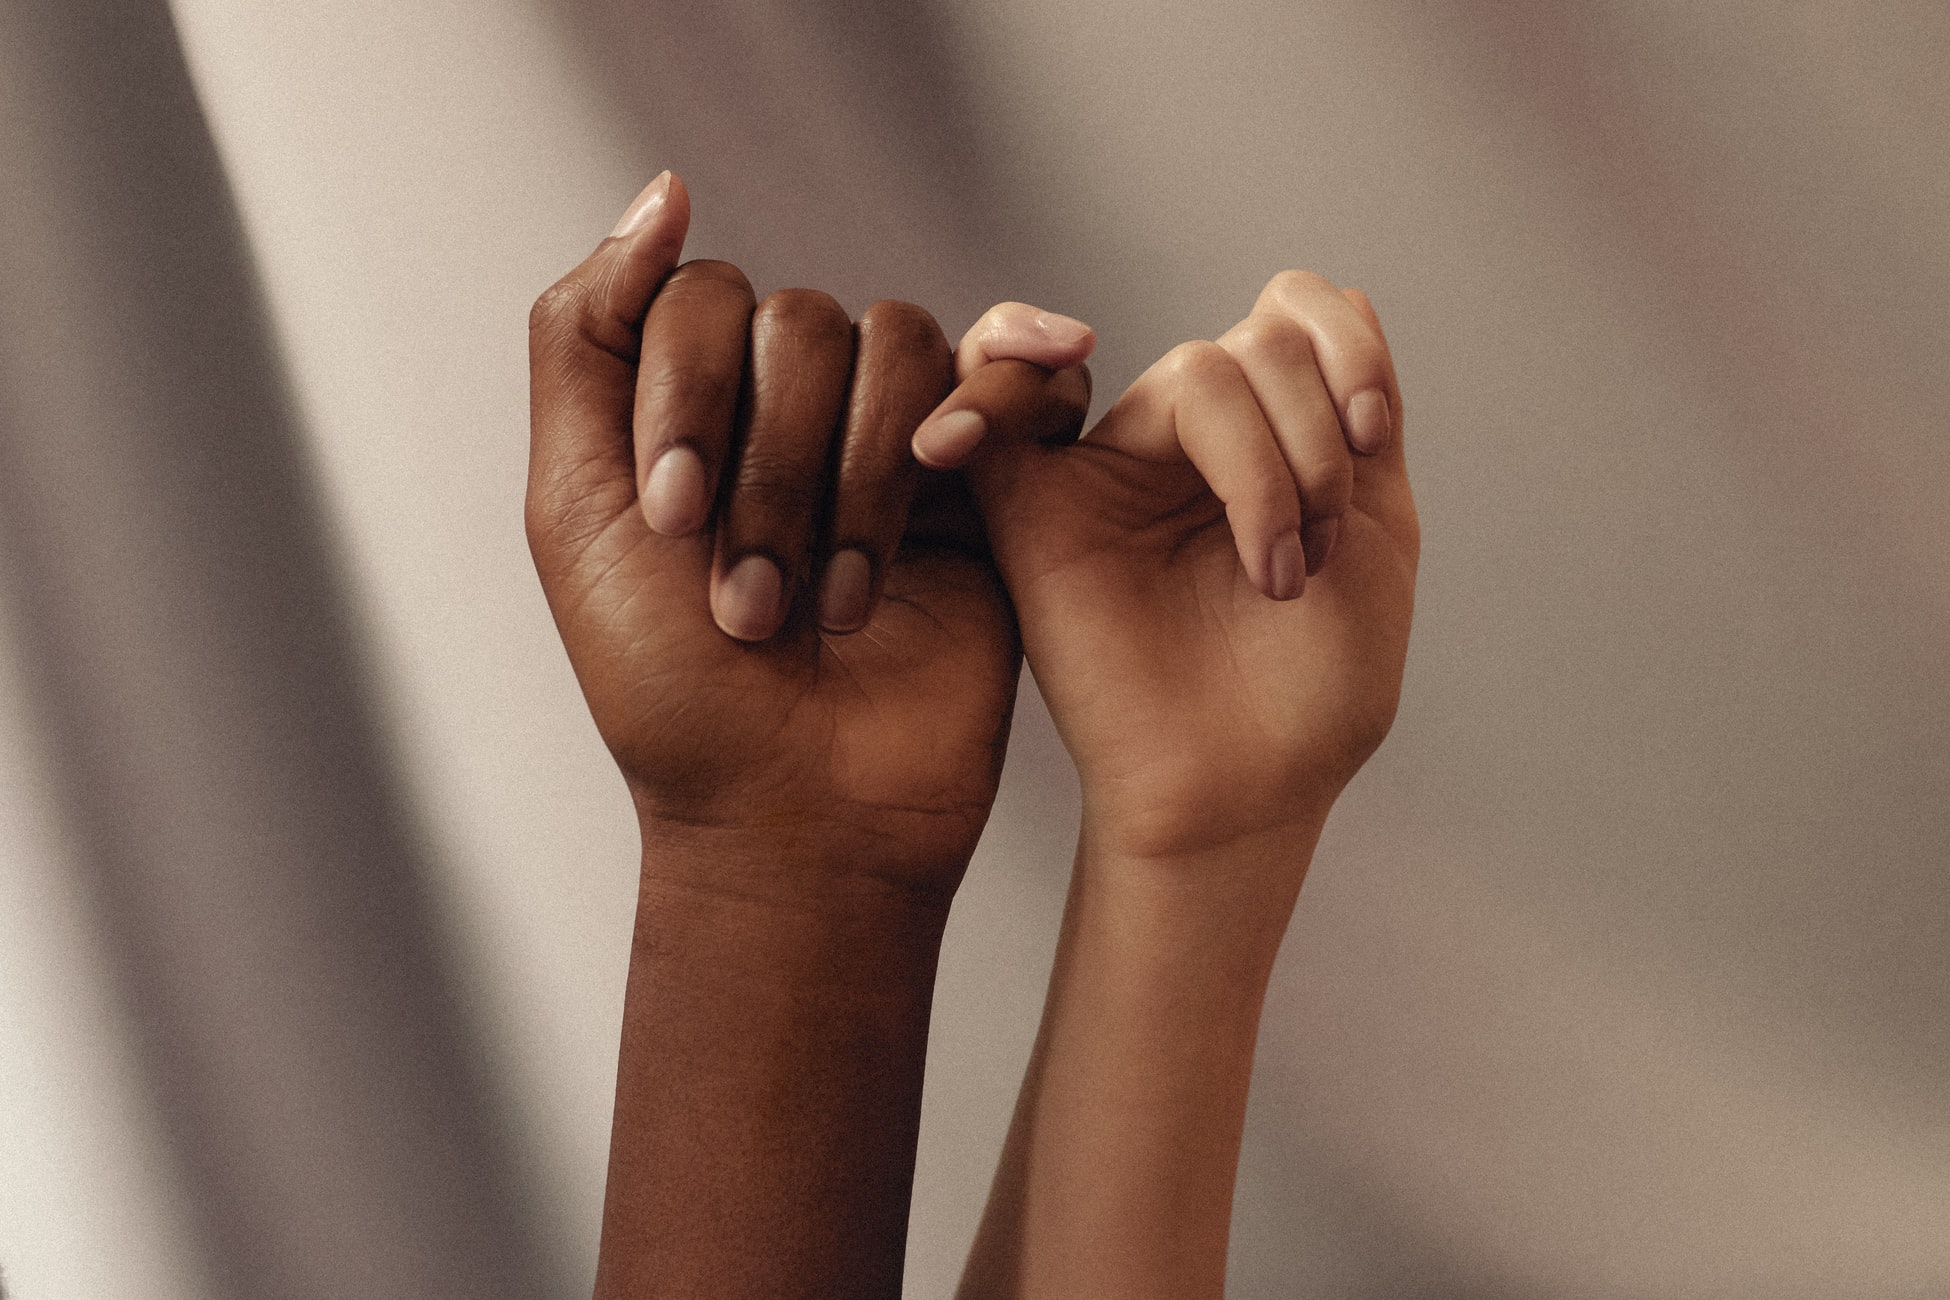 Two hands with pinky fingers entwined together